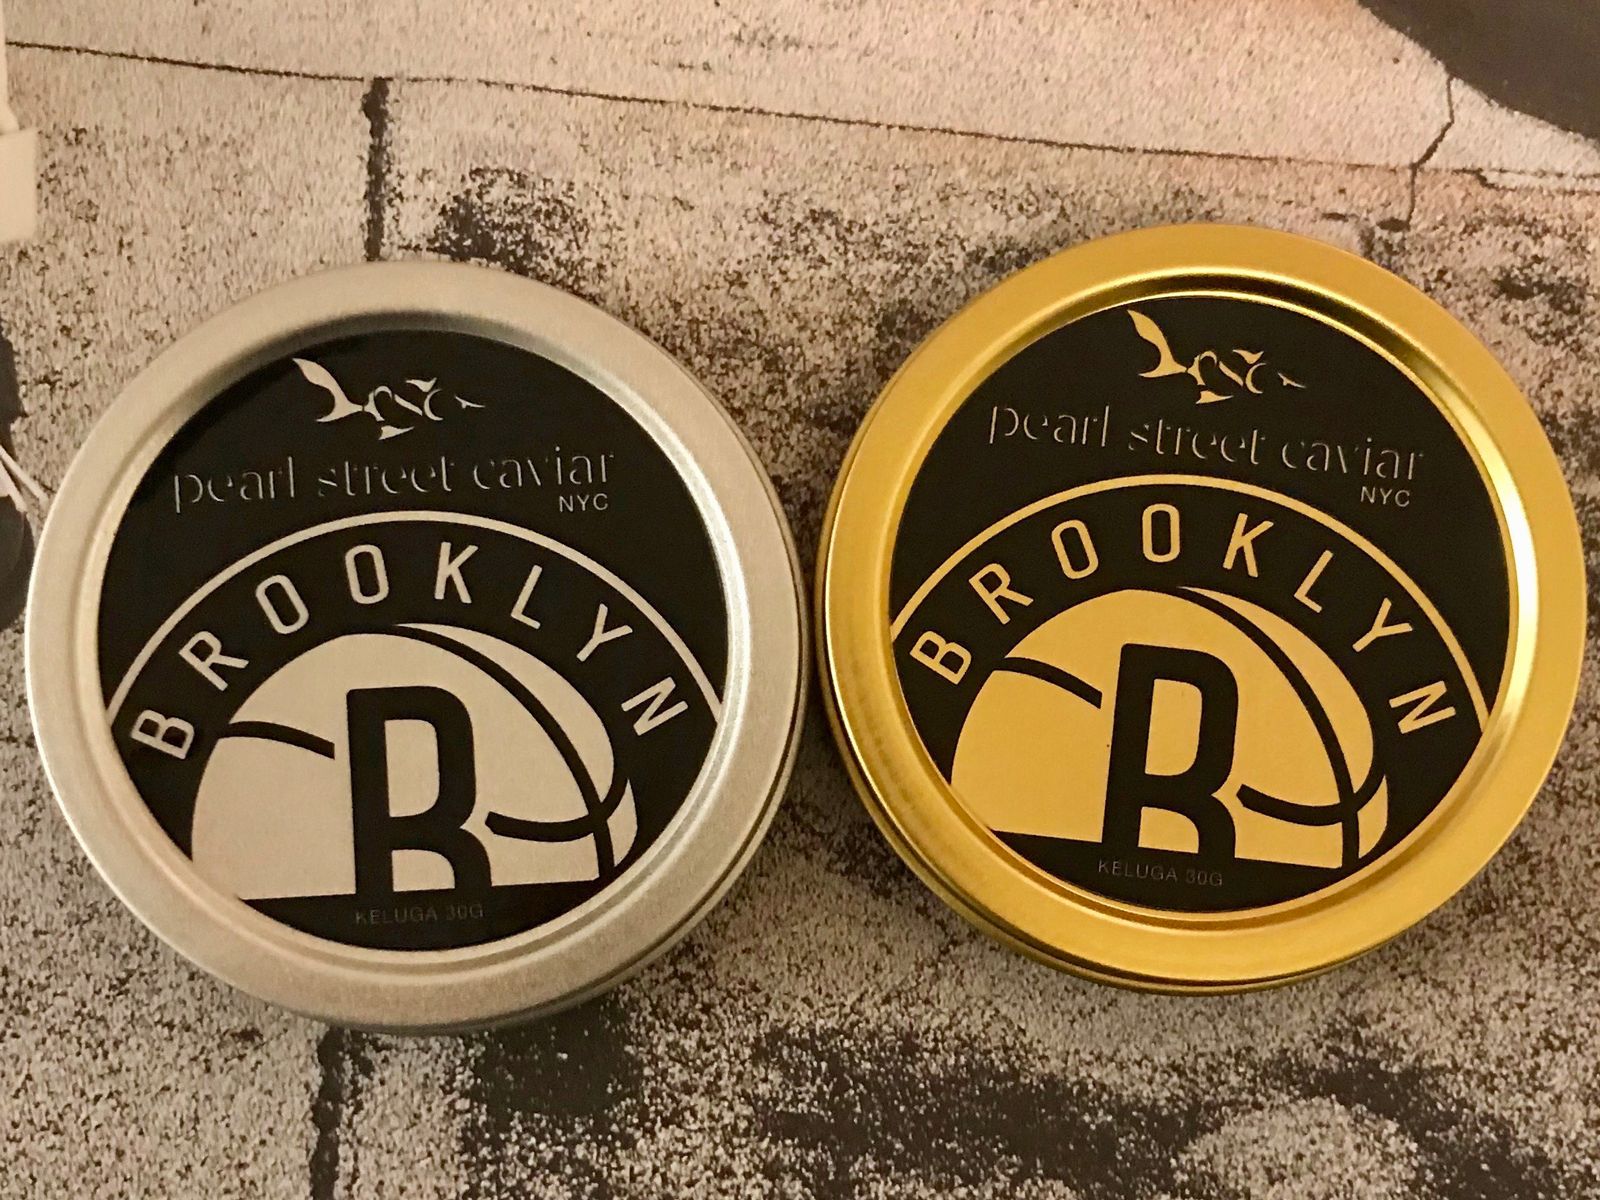 NBA-Branded Caviar Hopes to Be the Way Cooler Gatorade